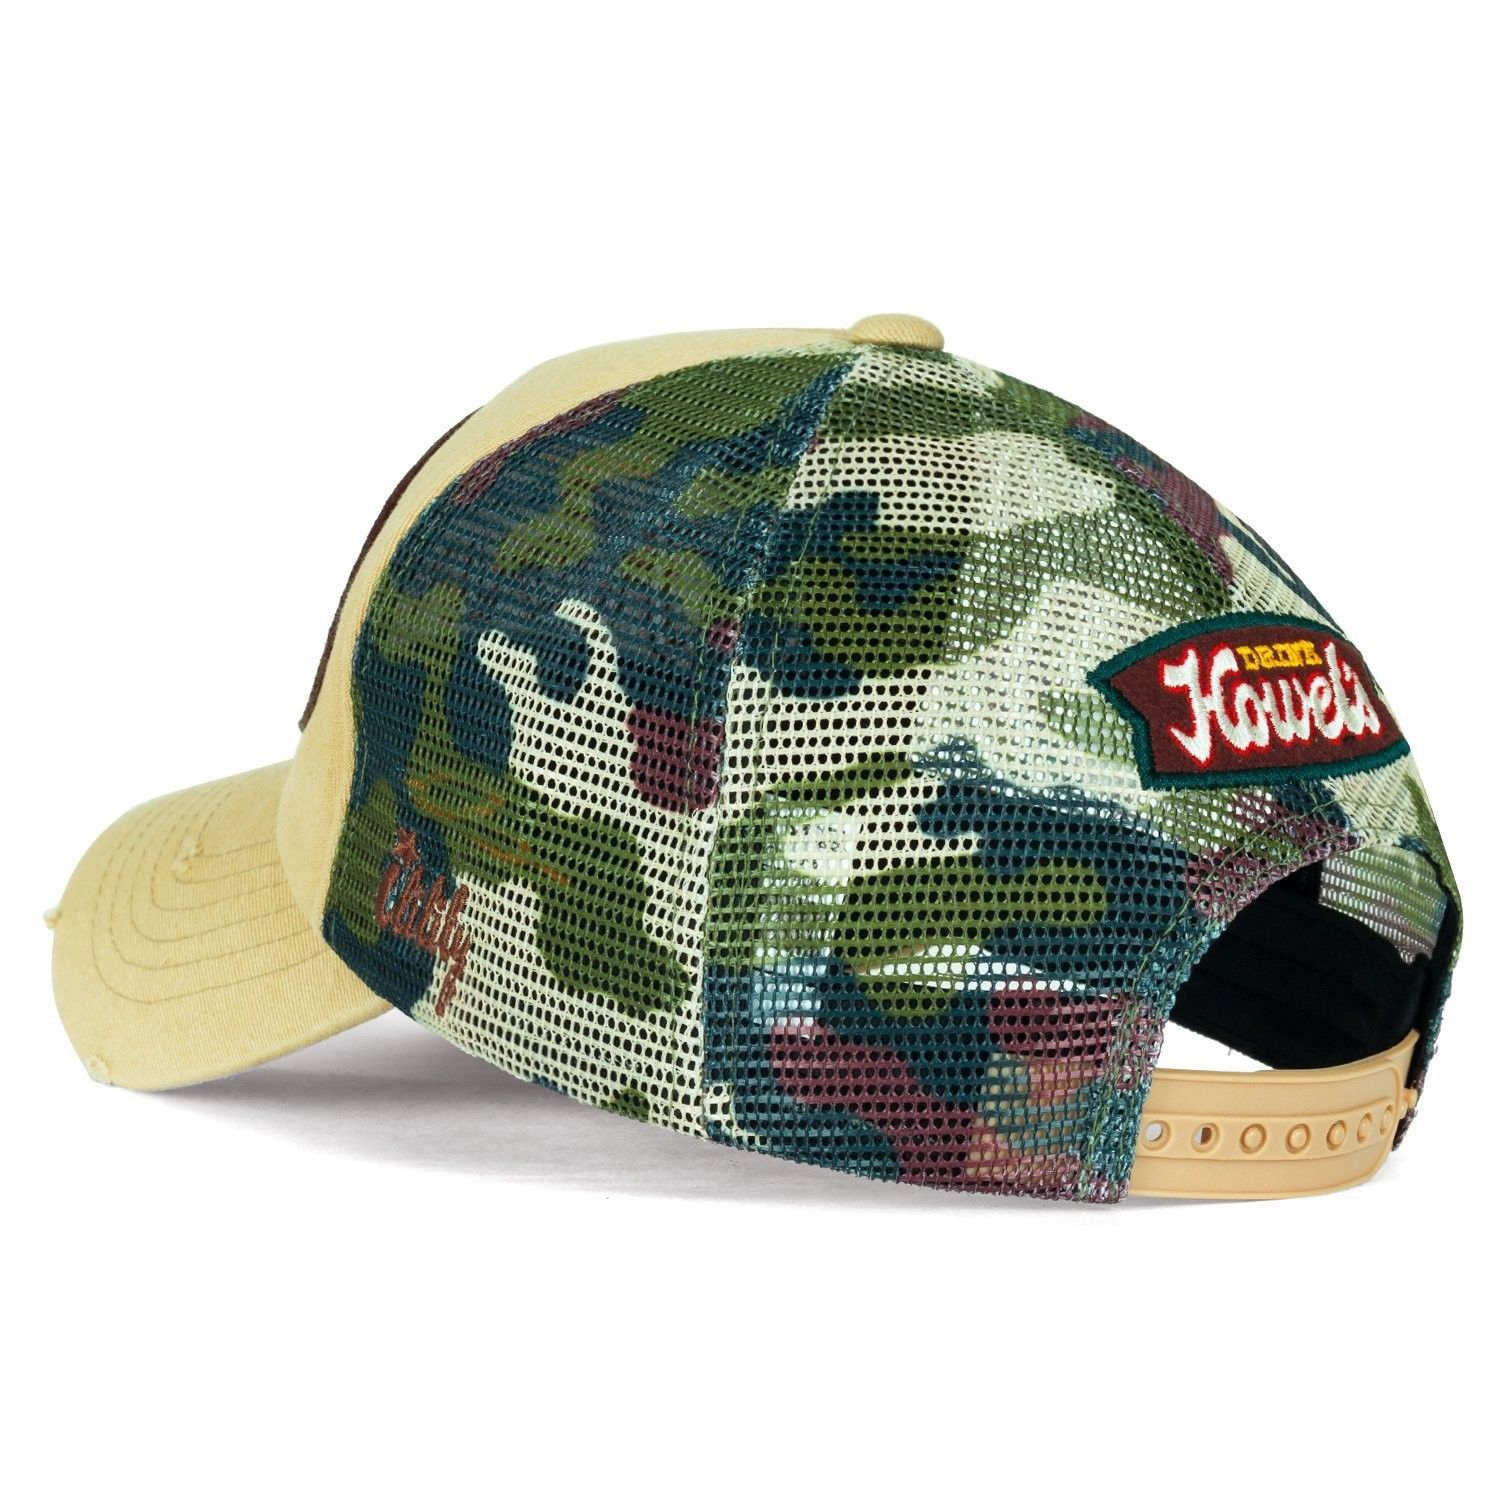 413cf60a8a853 Howel s Camouflage Baseball Mesh Cap Distressed Vintage Trucker Hat ...